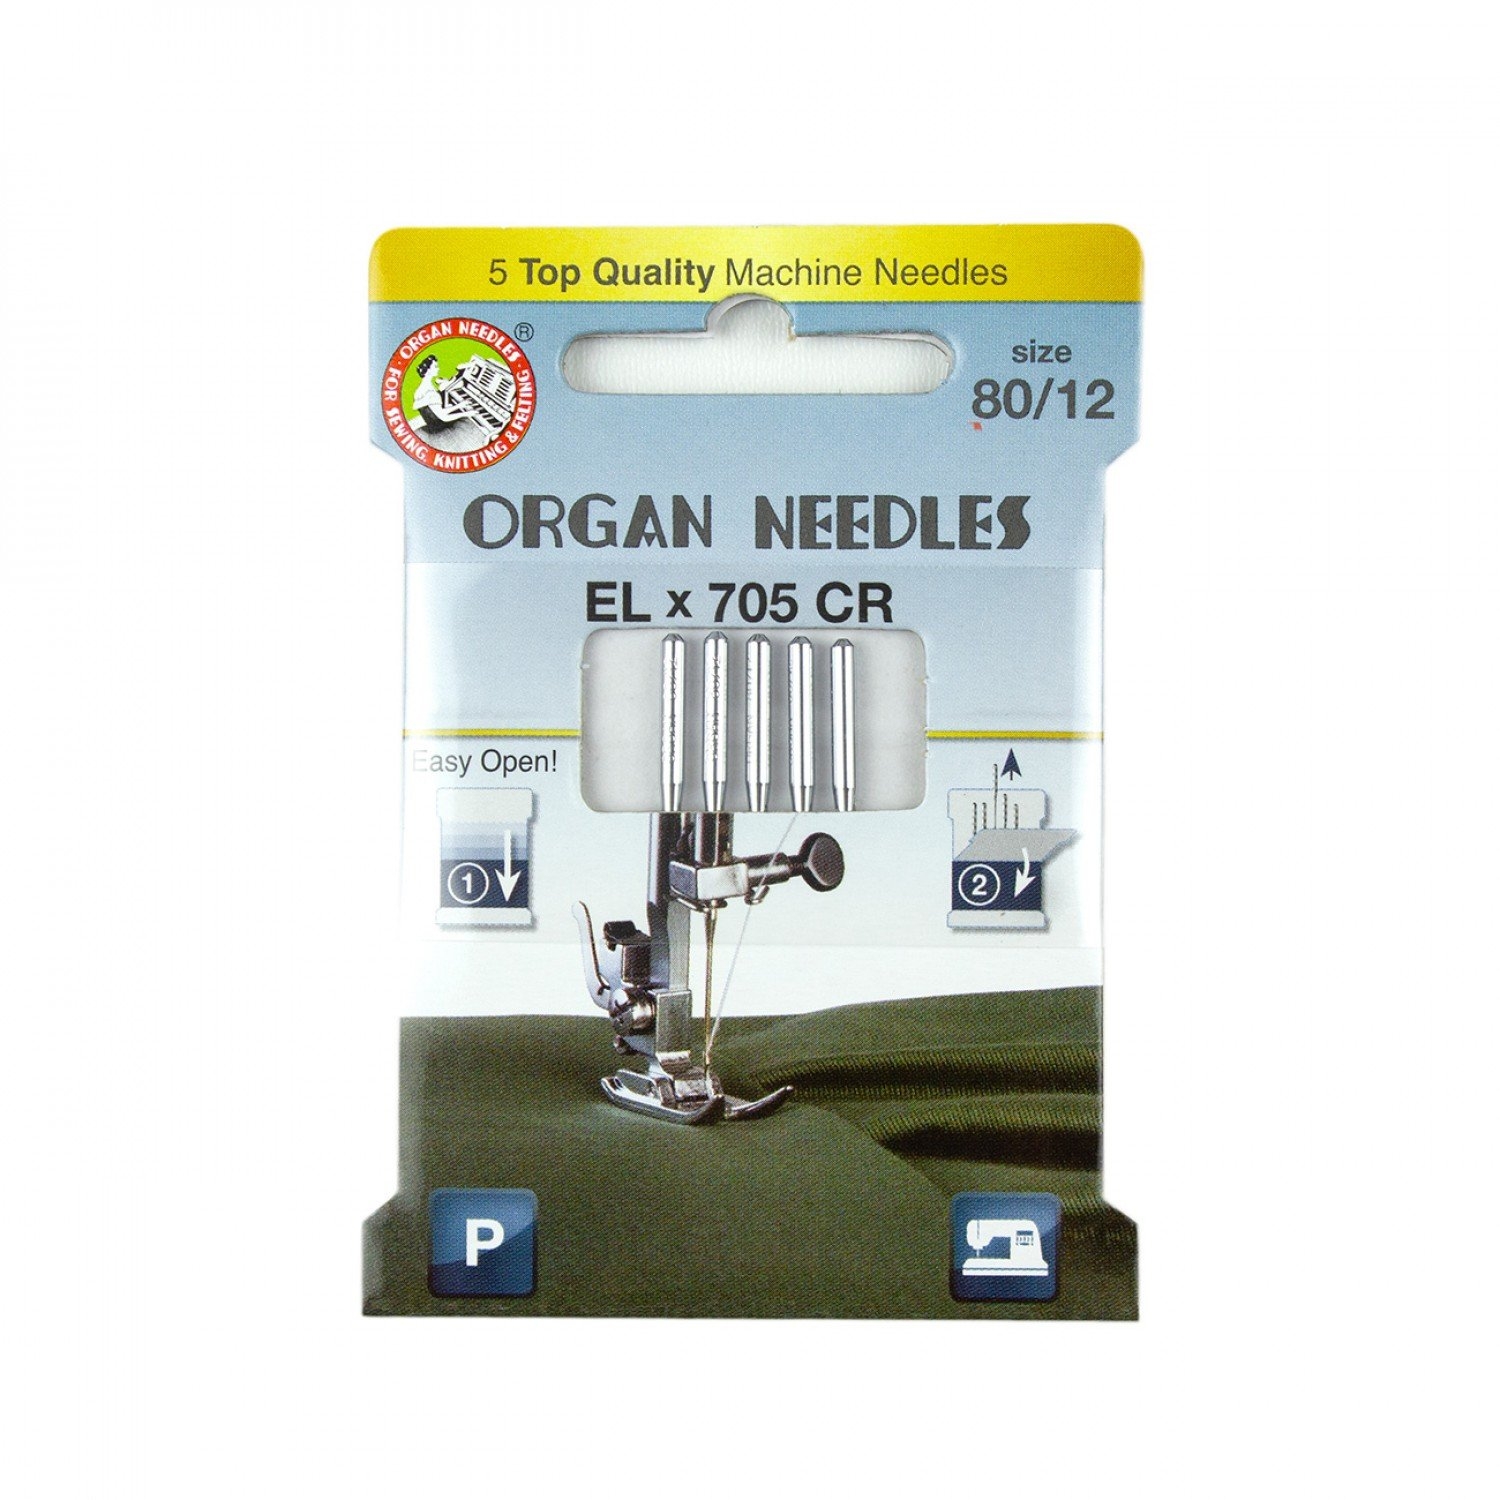 Organ Needles ELx705 Chromium Size 80/12